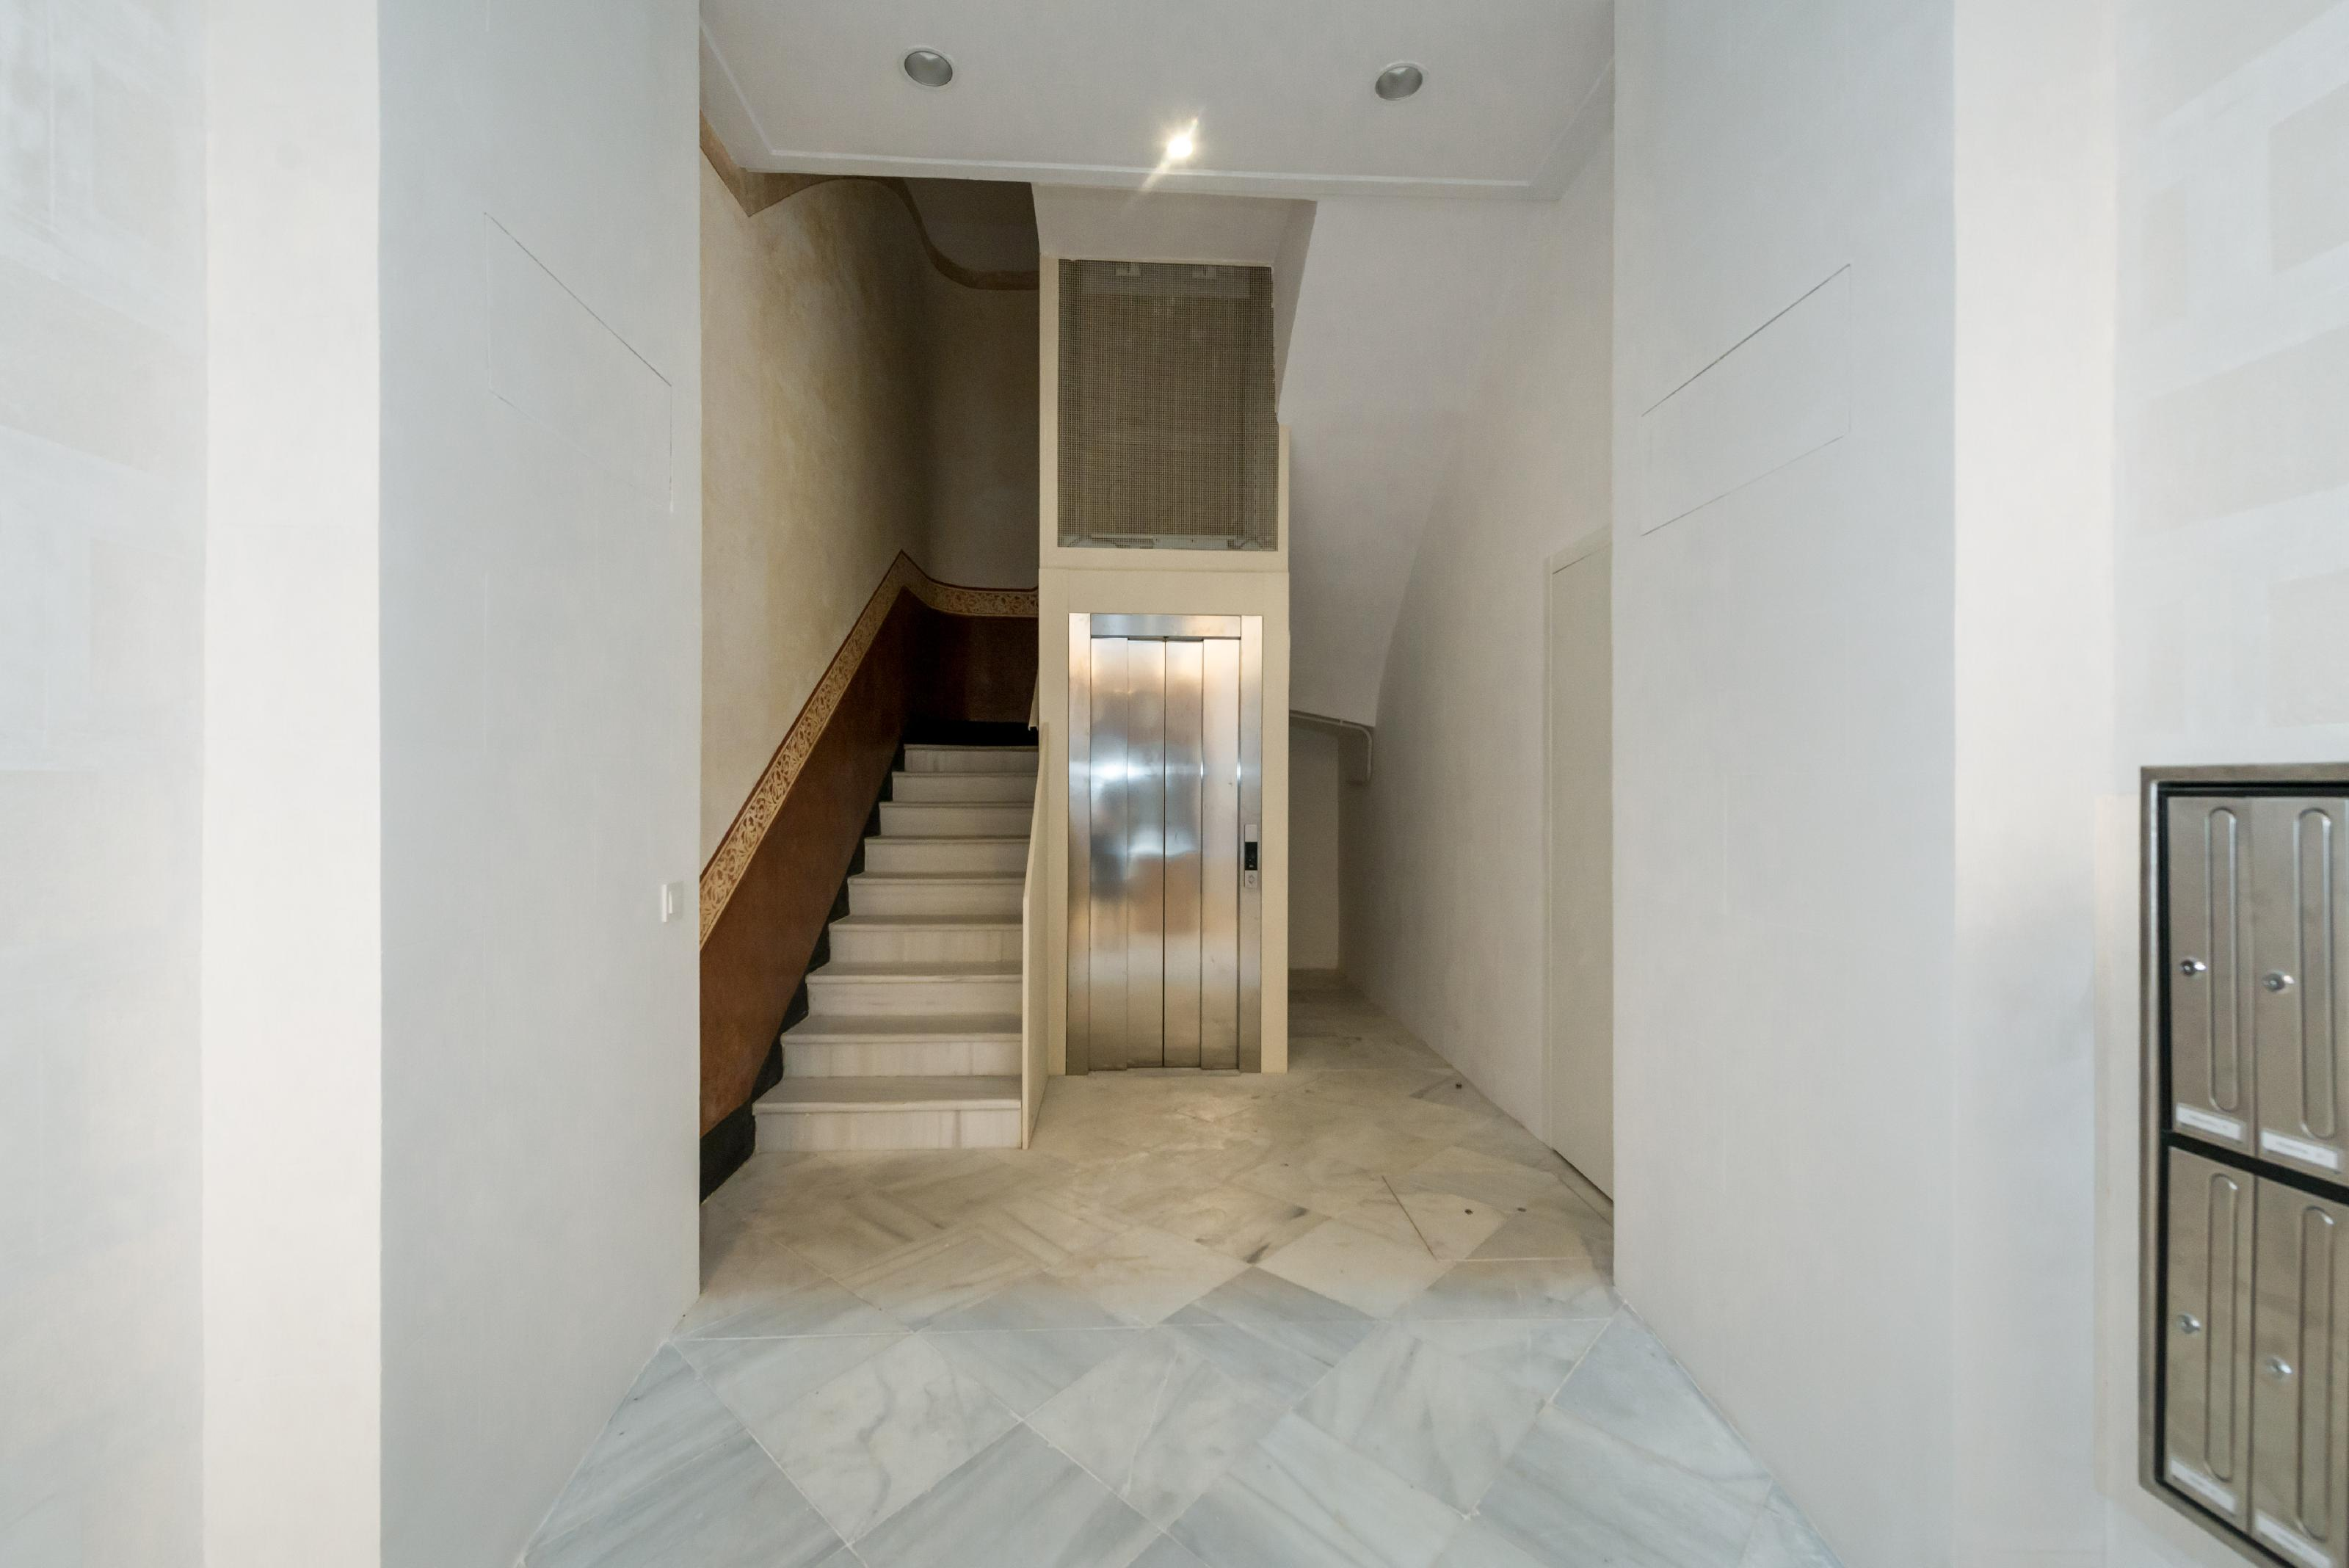 236358 Flat for sale in Eixample, Old Left Eixample 29